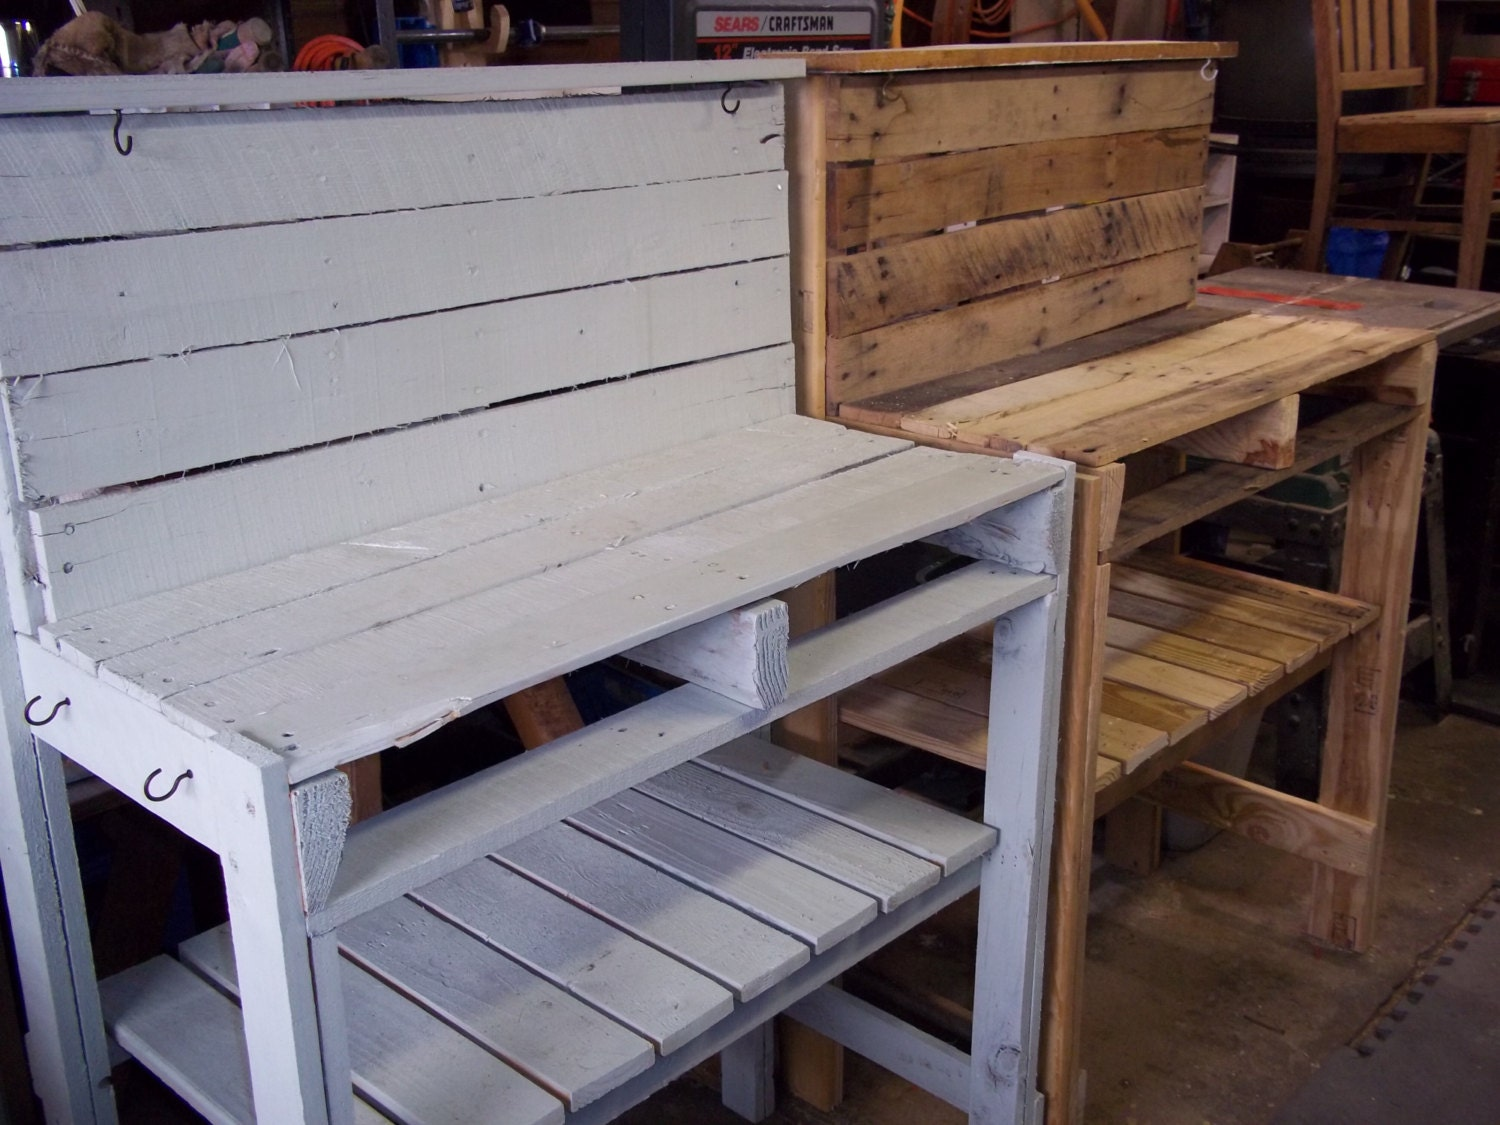 Potting Bench made of reclaimed pallet wood.